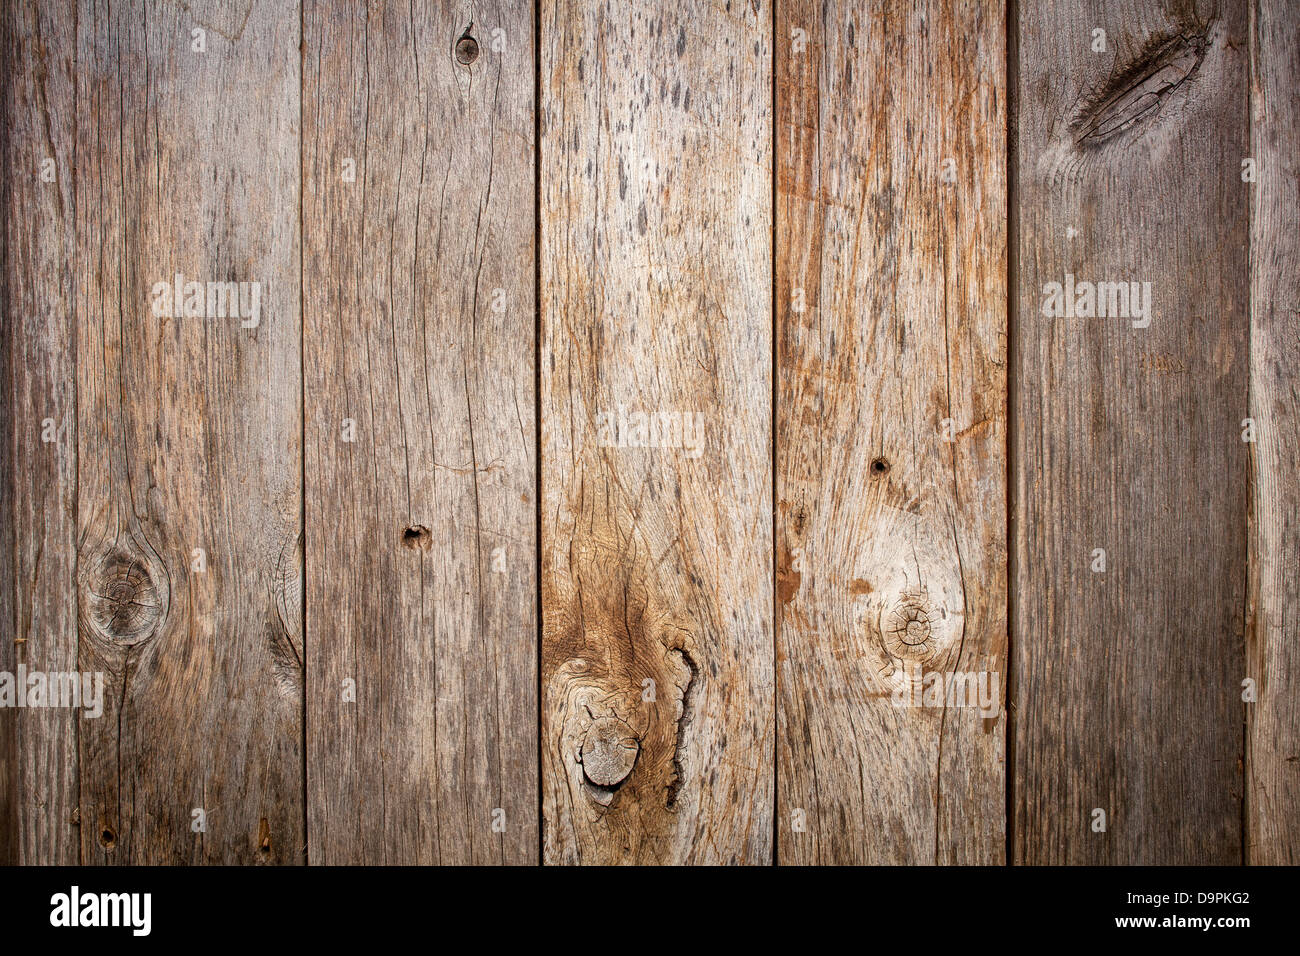 grunge weathered barn wood background with knots and nail holes - Stock Image